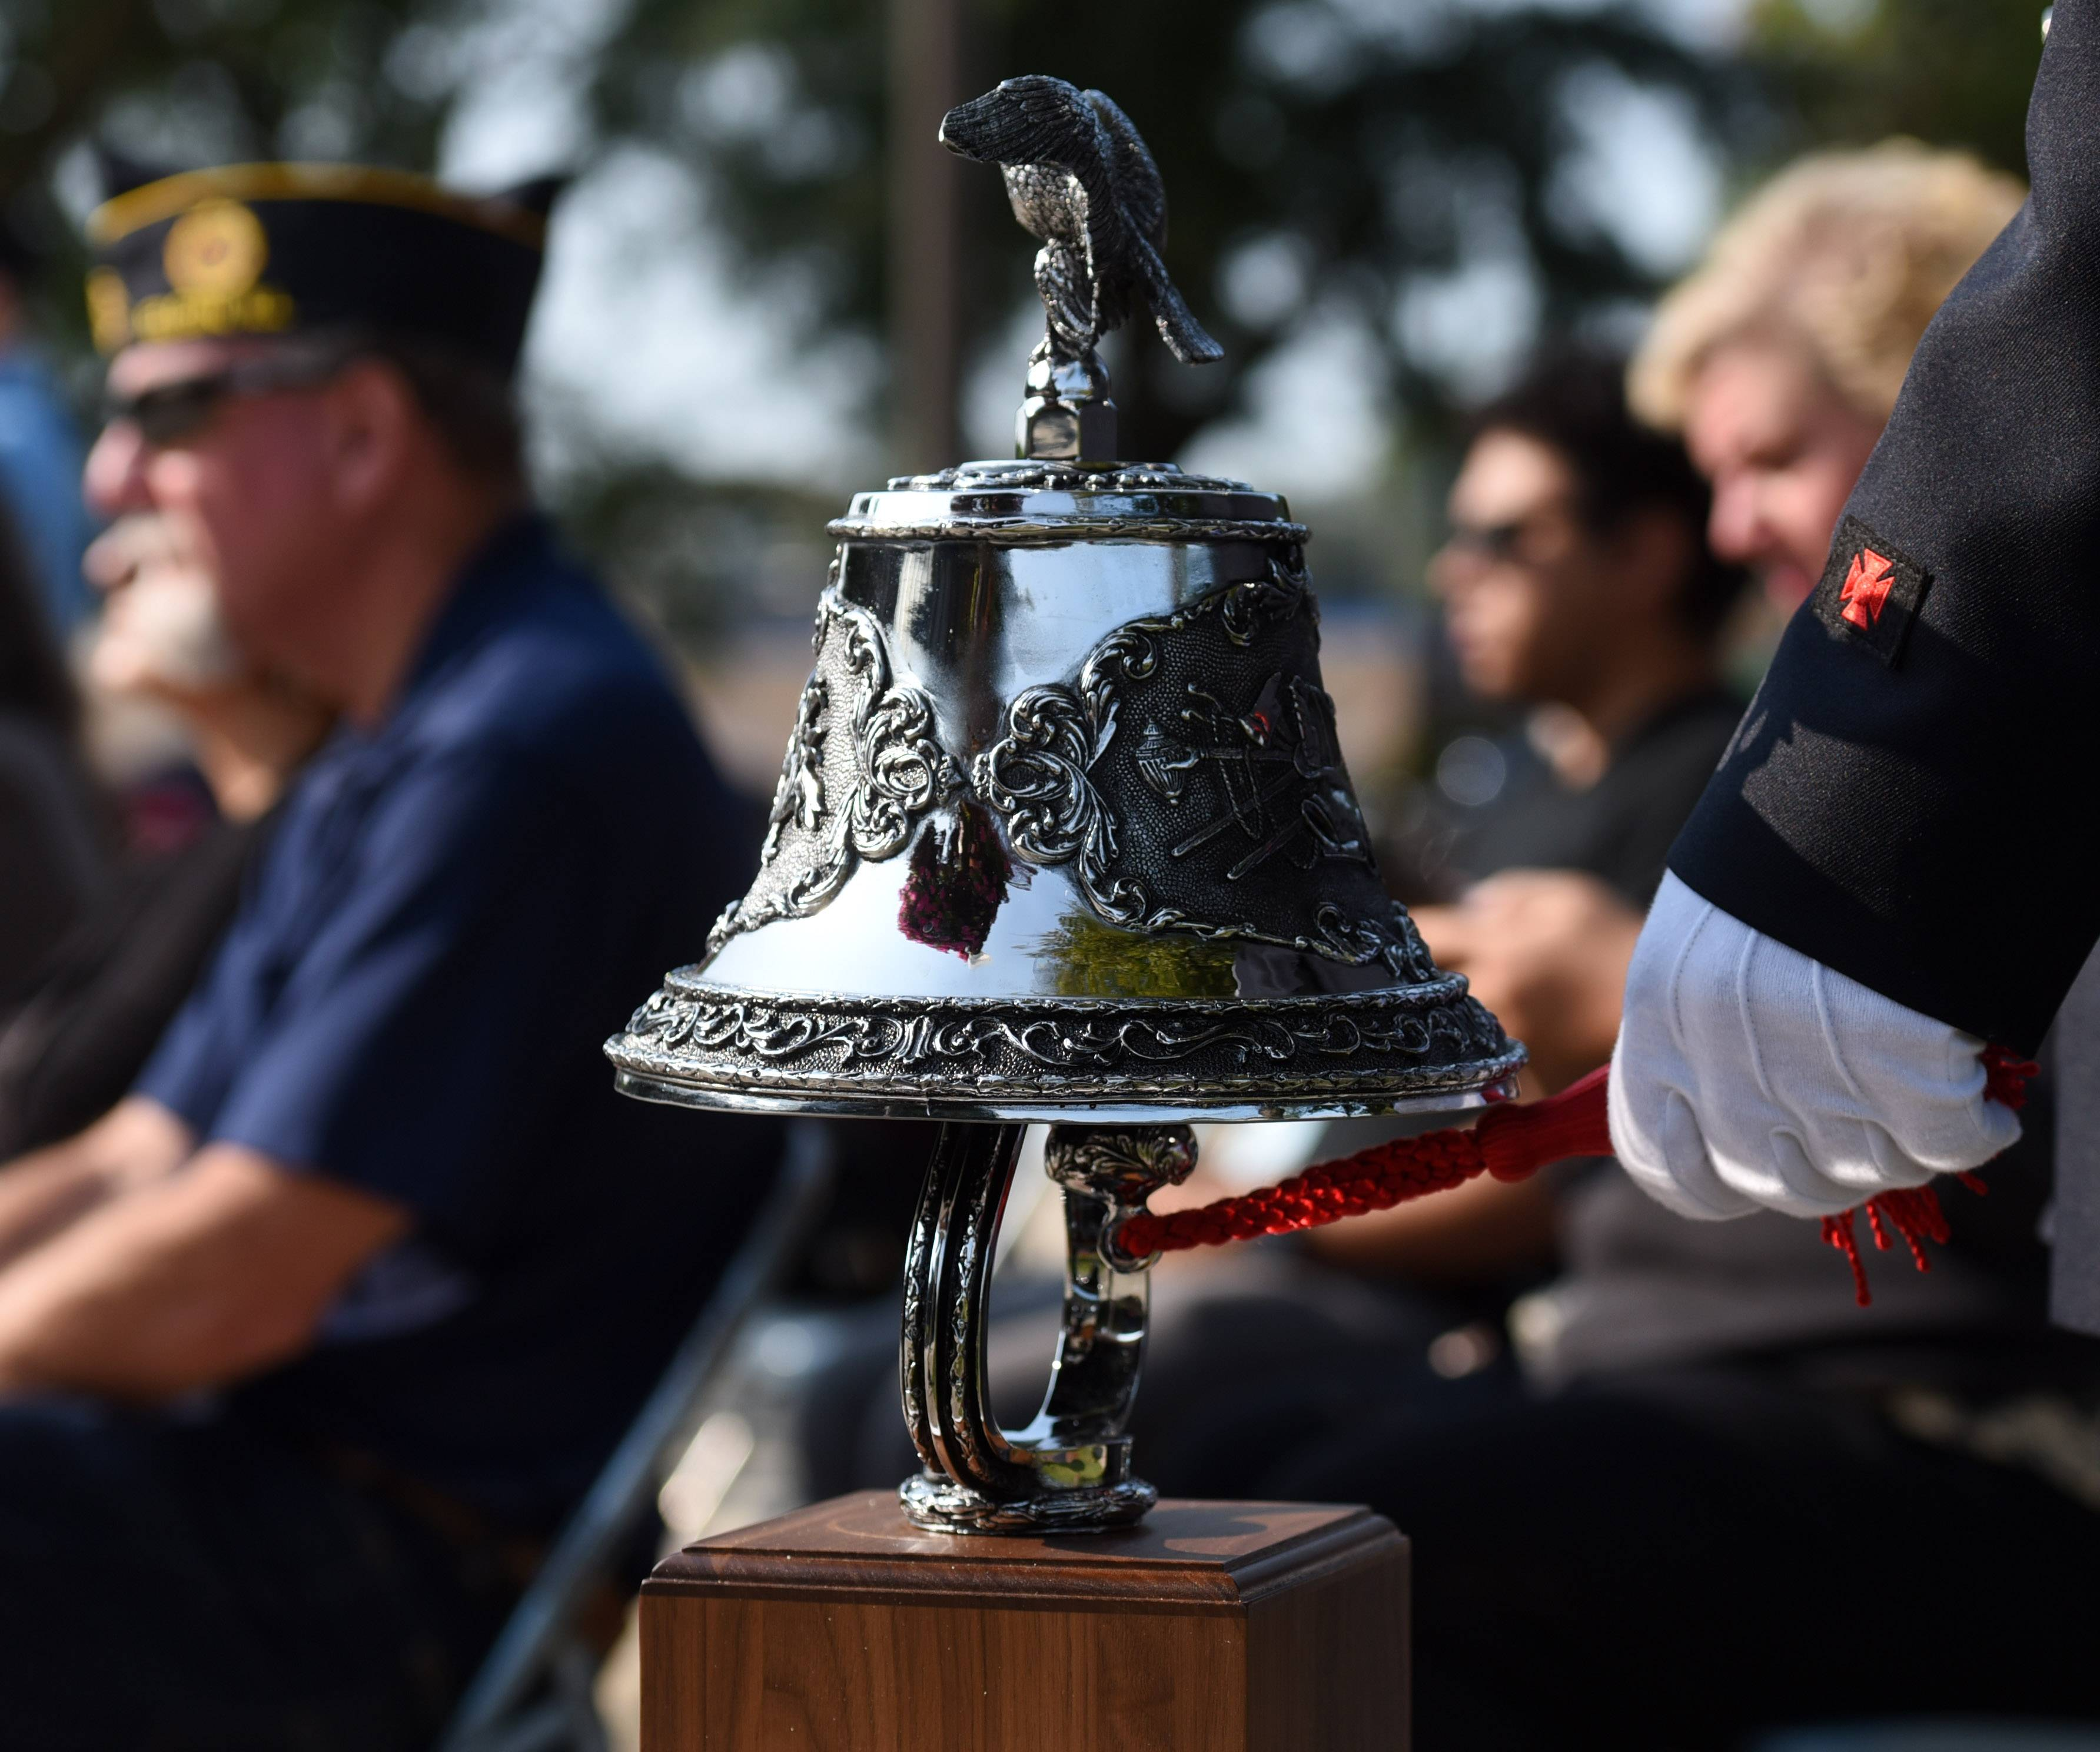 Elgin firefighter Kanen Terry rings the bell to honor those who died in the Sept. 11 terrorist attacks during Elgin's remembrance ceremony Monday.